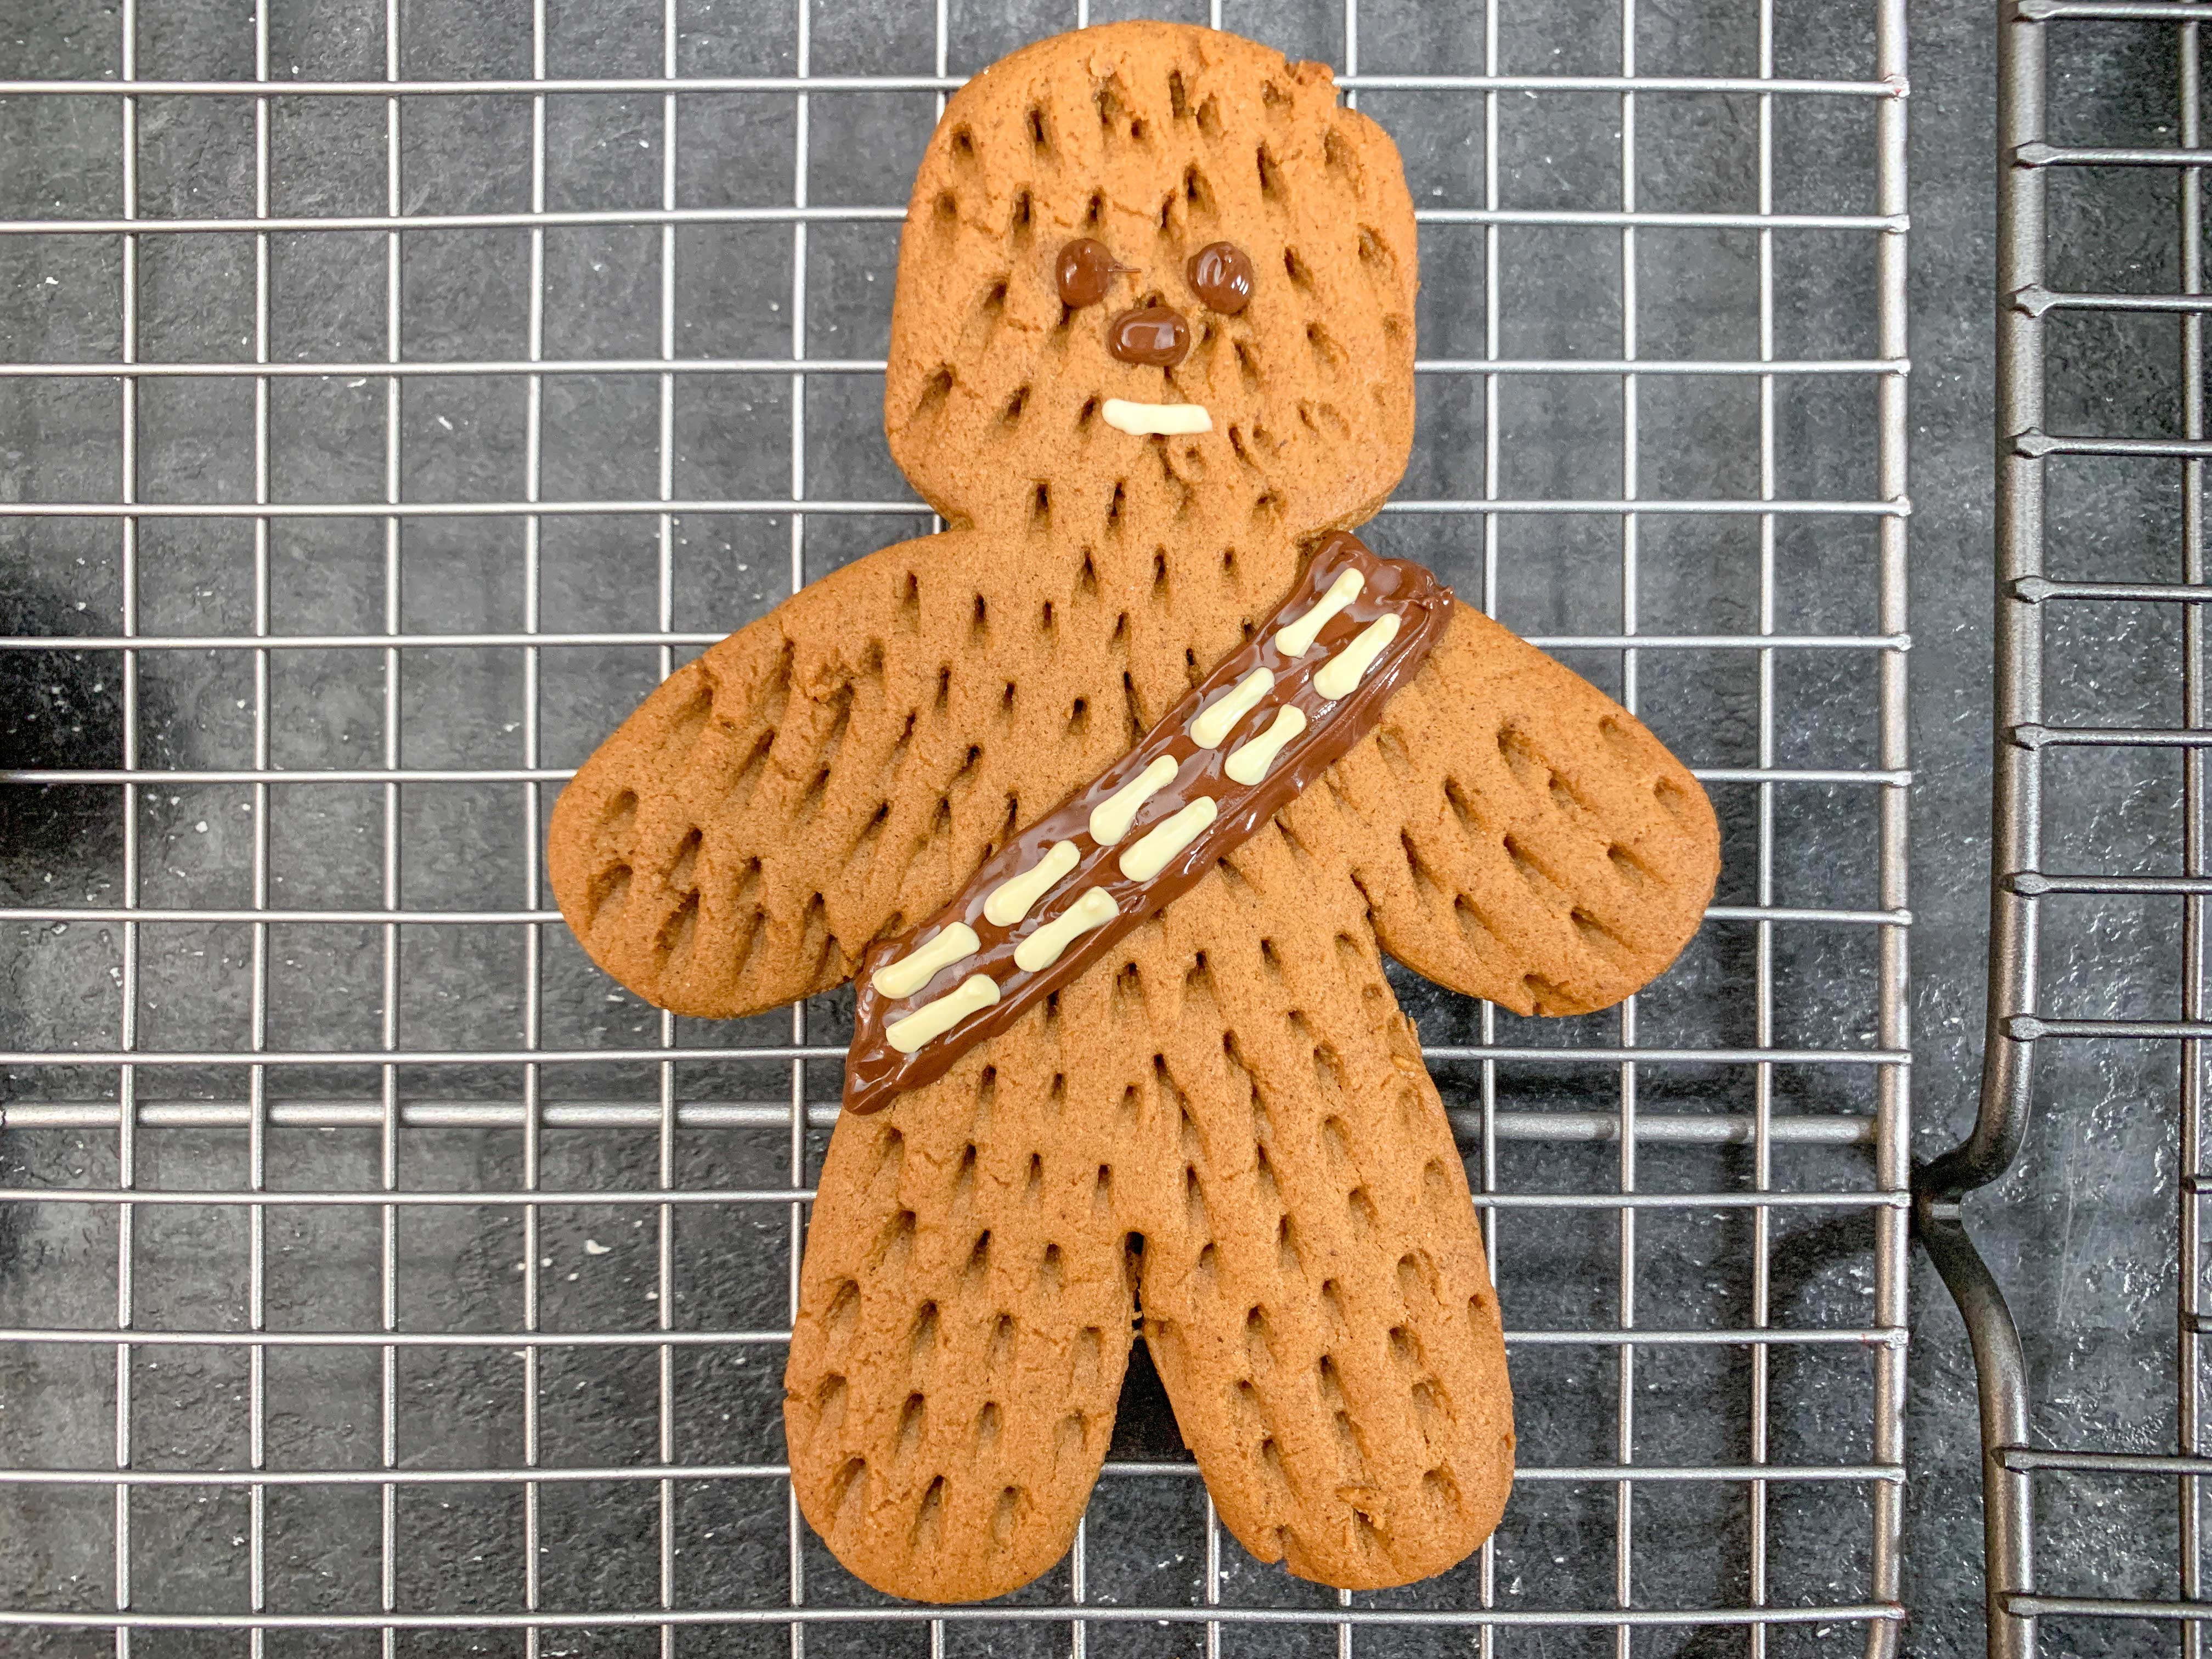 close up of Chewbacca with piped chocolate details